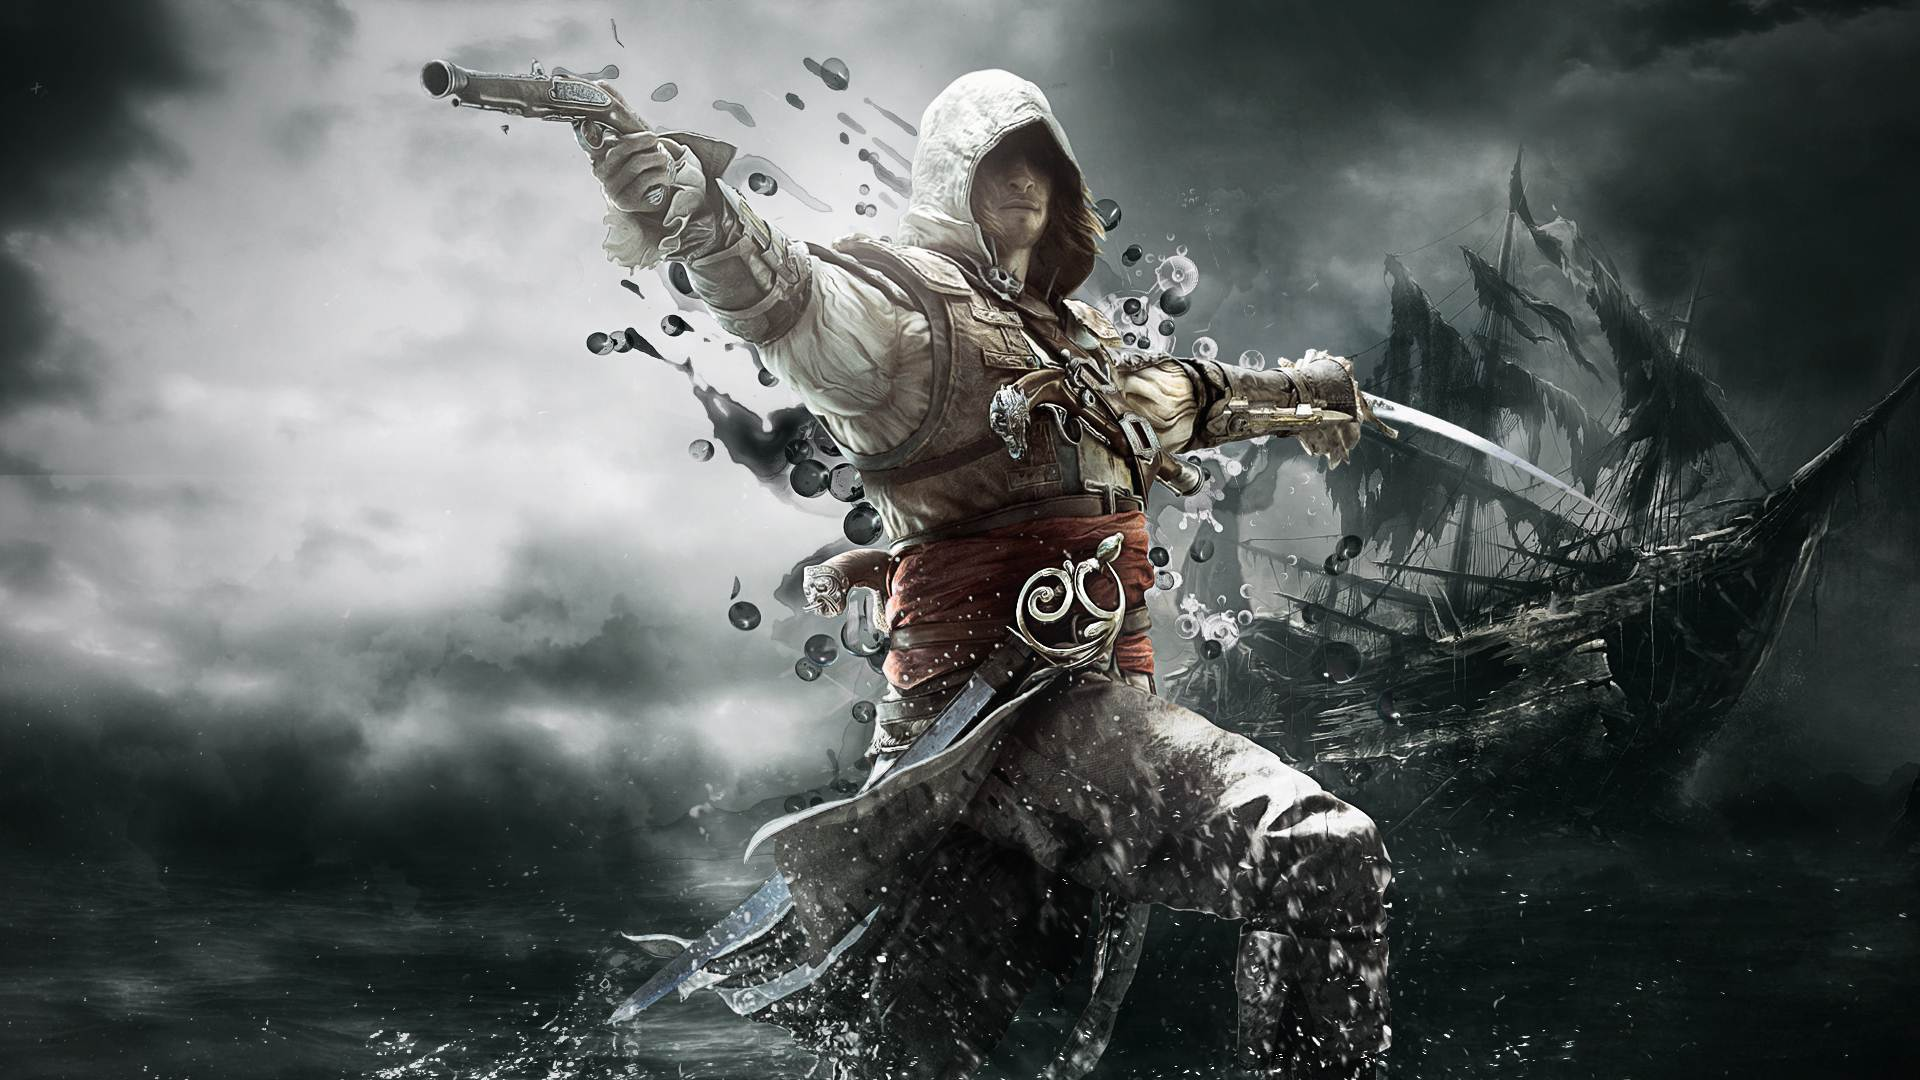 Assassins Creed Iv Black Flag Wallpaper 7